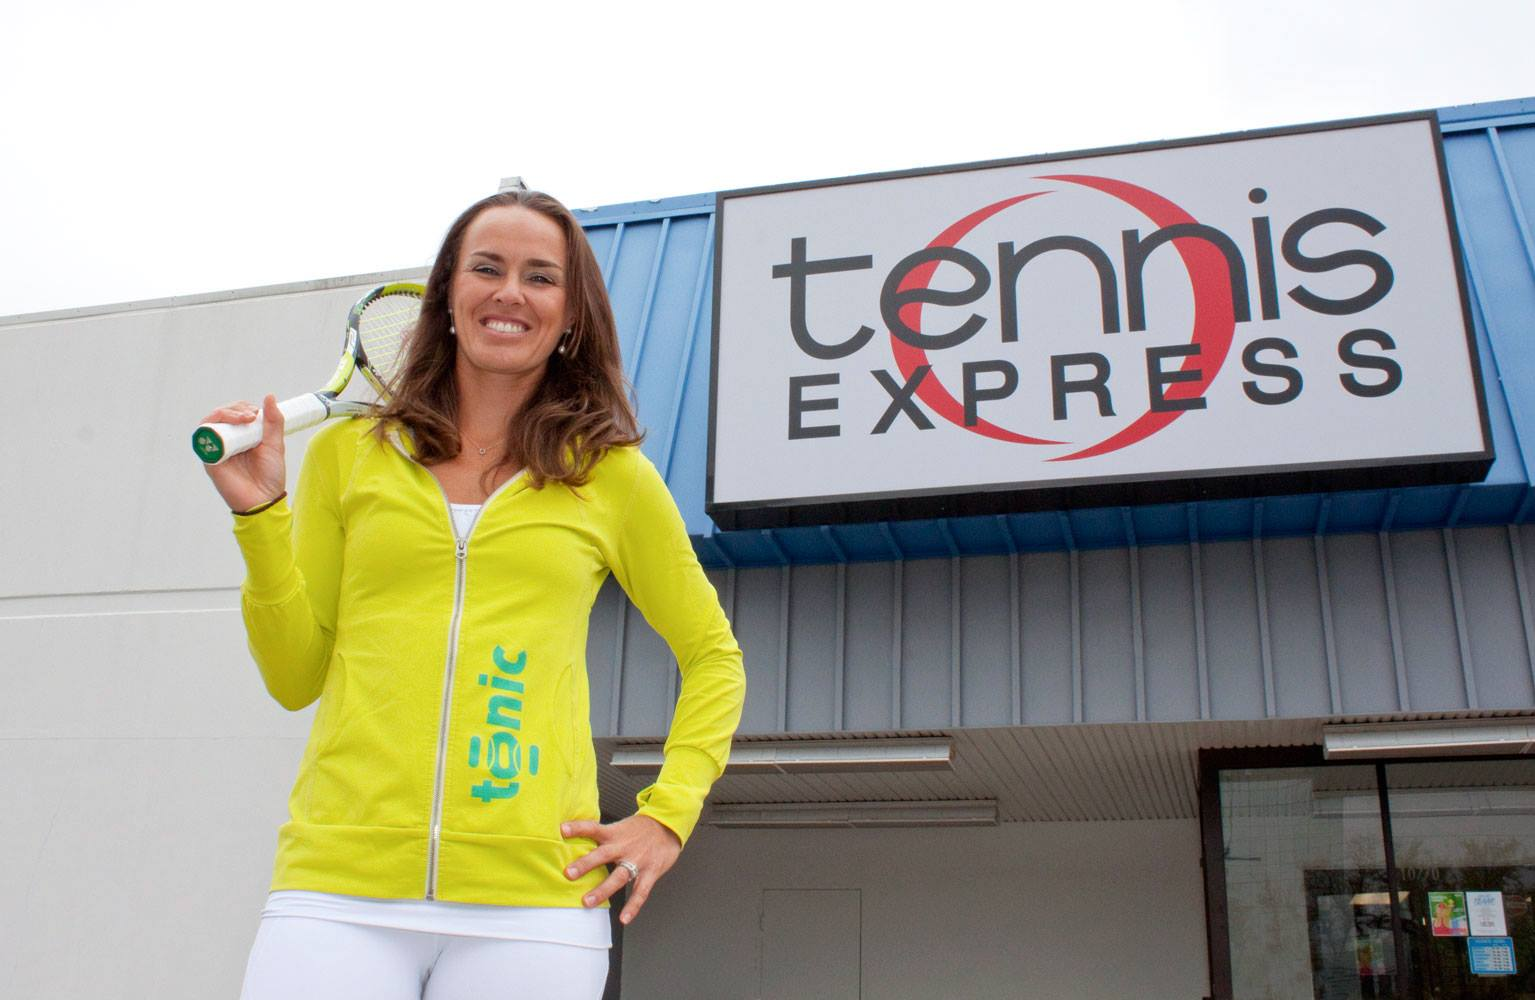 Martina Hingis Talks Tonic at Tennis Express